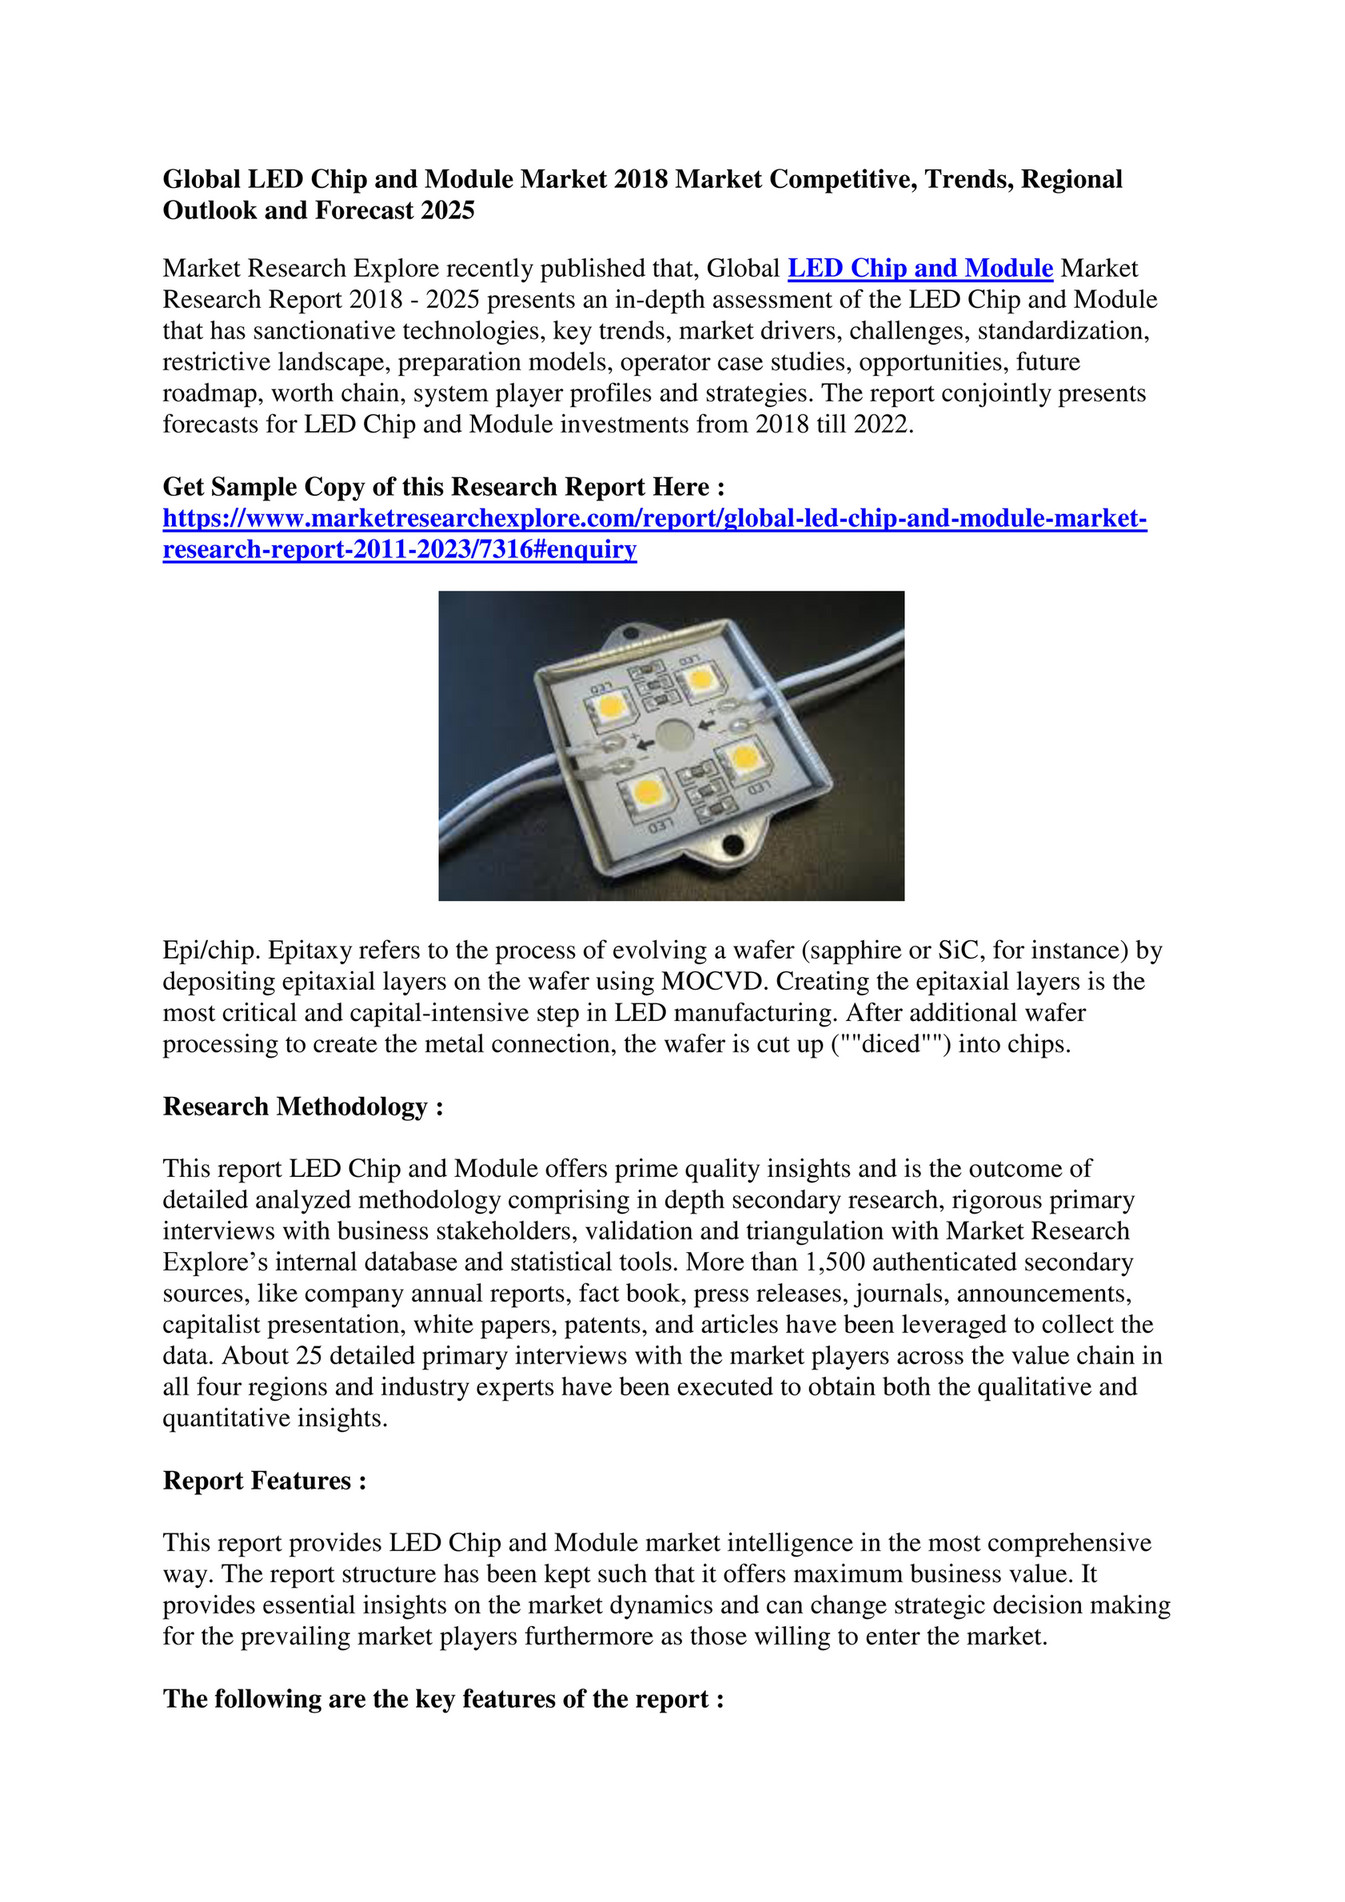 Market Research Explore - Global LED Chip and Module Market